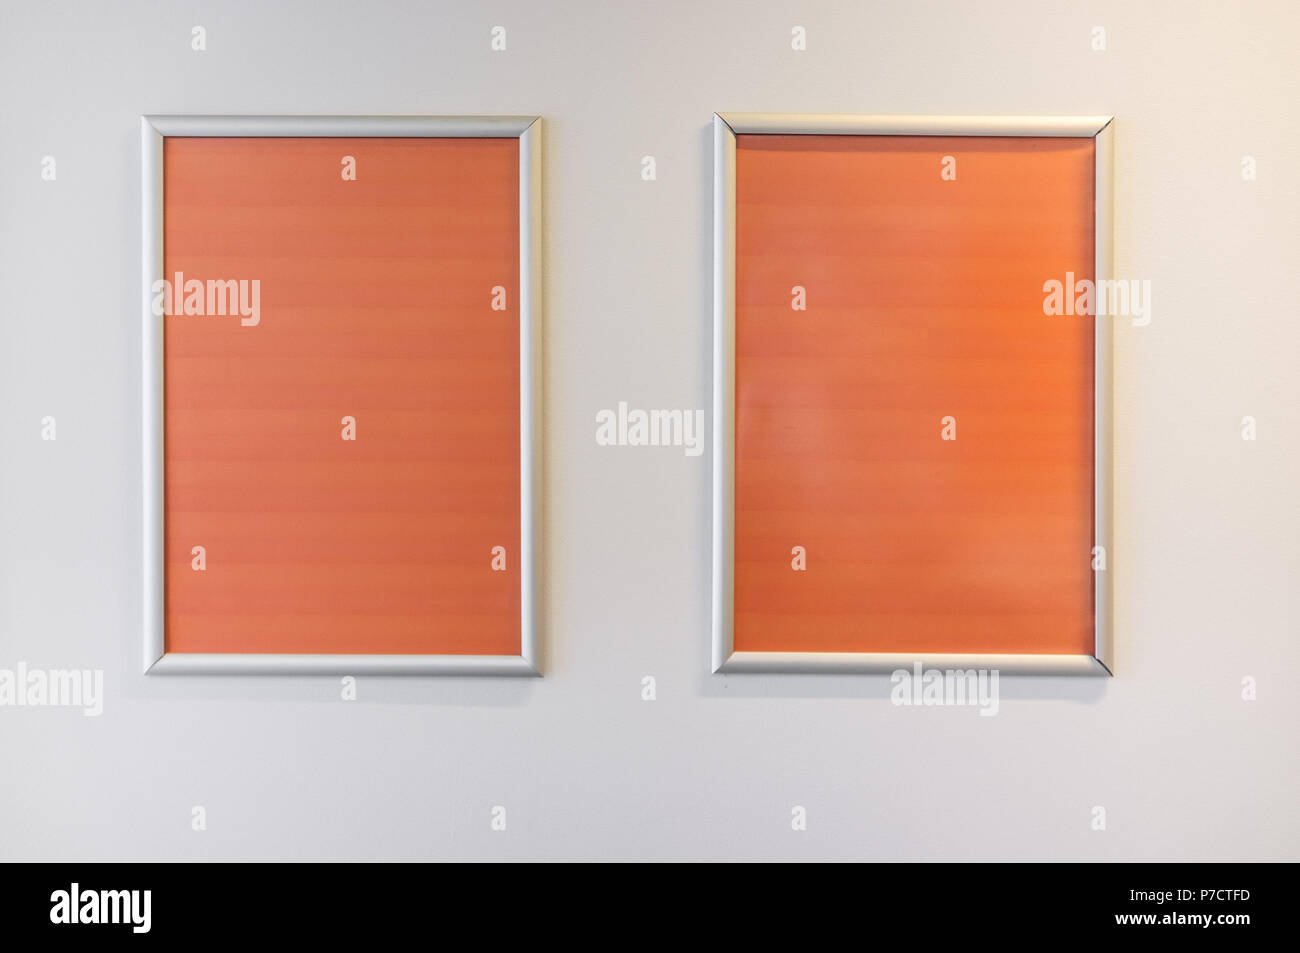 Two picture frames with orange copy space hanging on white wall - Stock Image